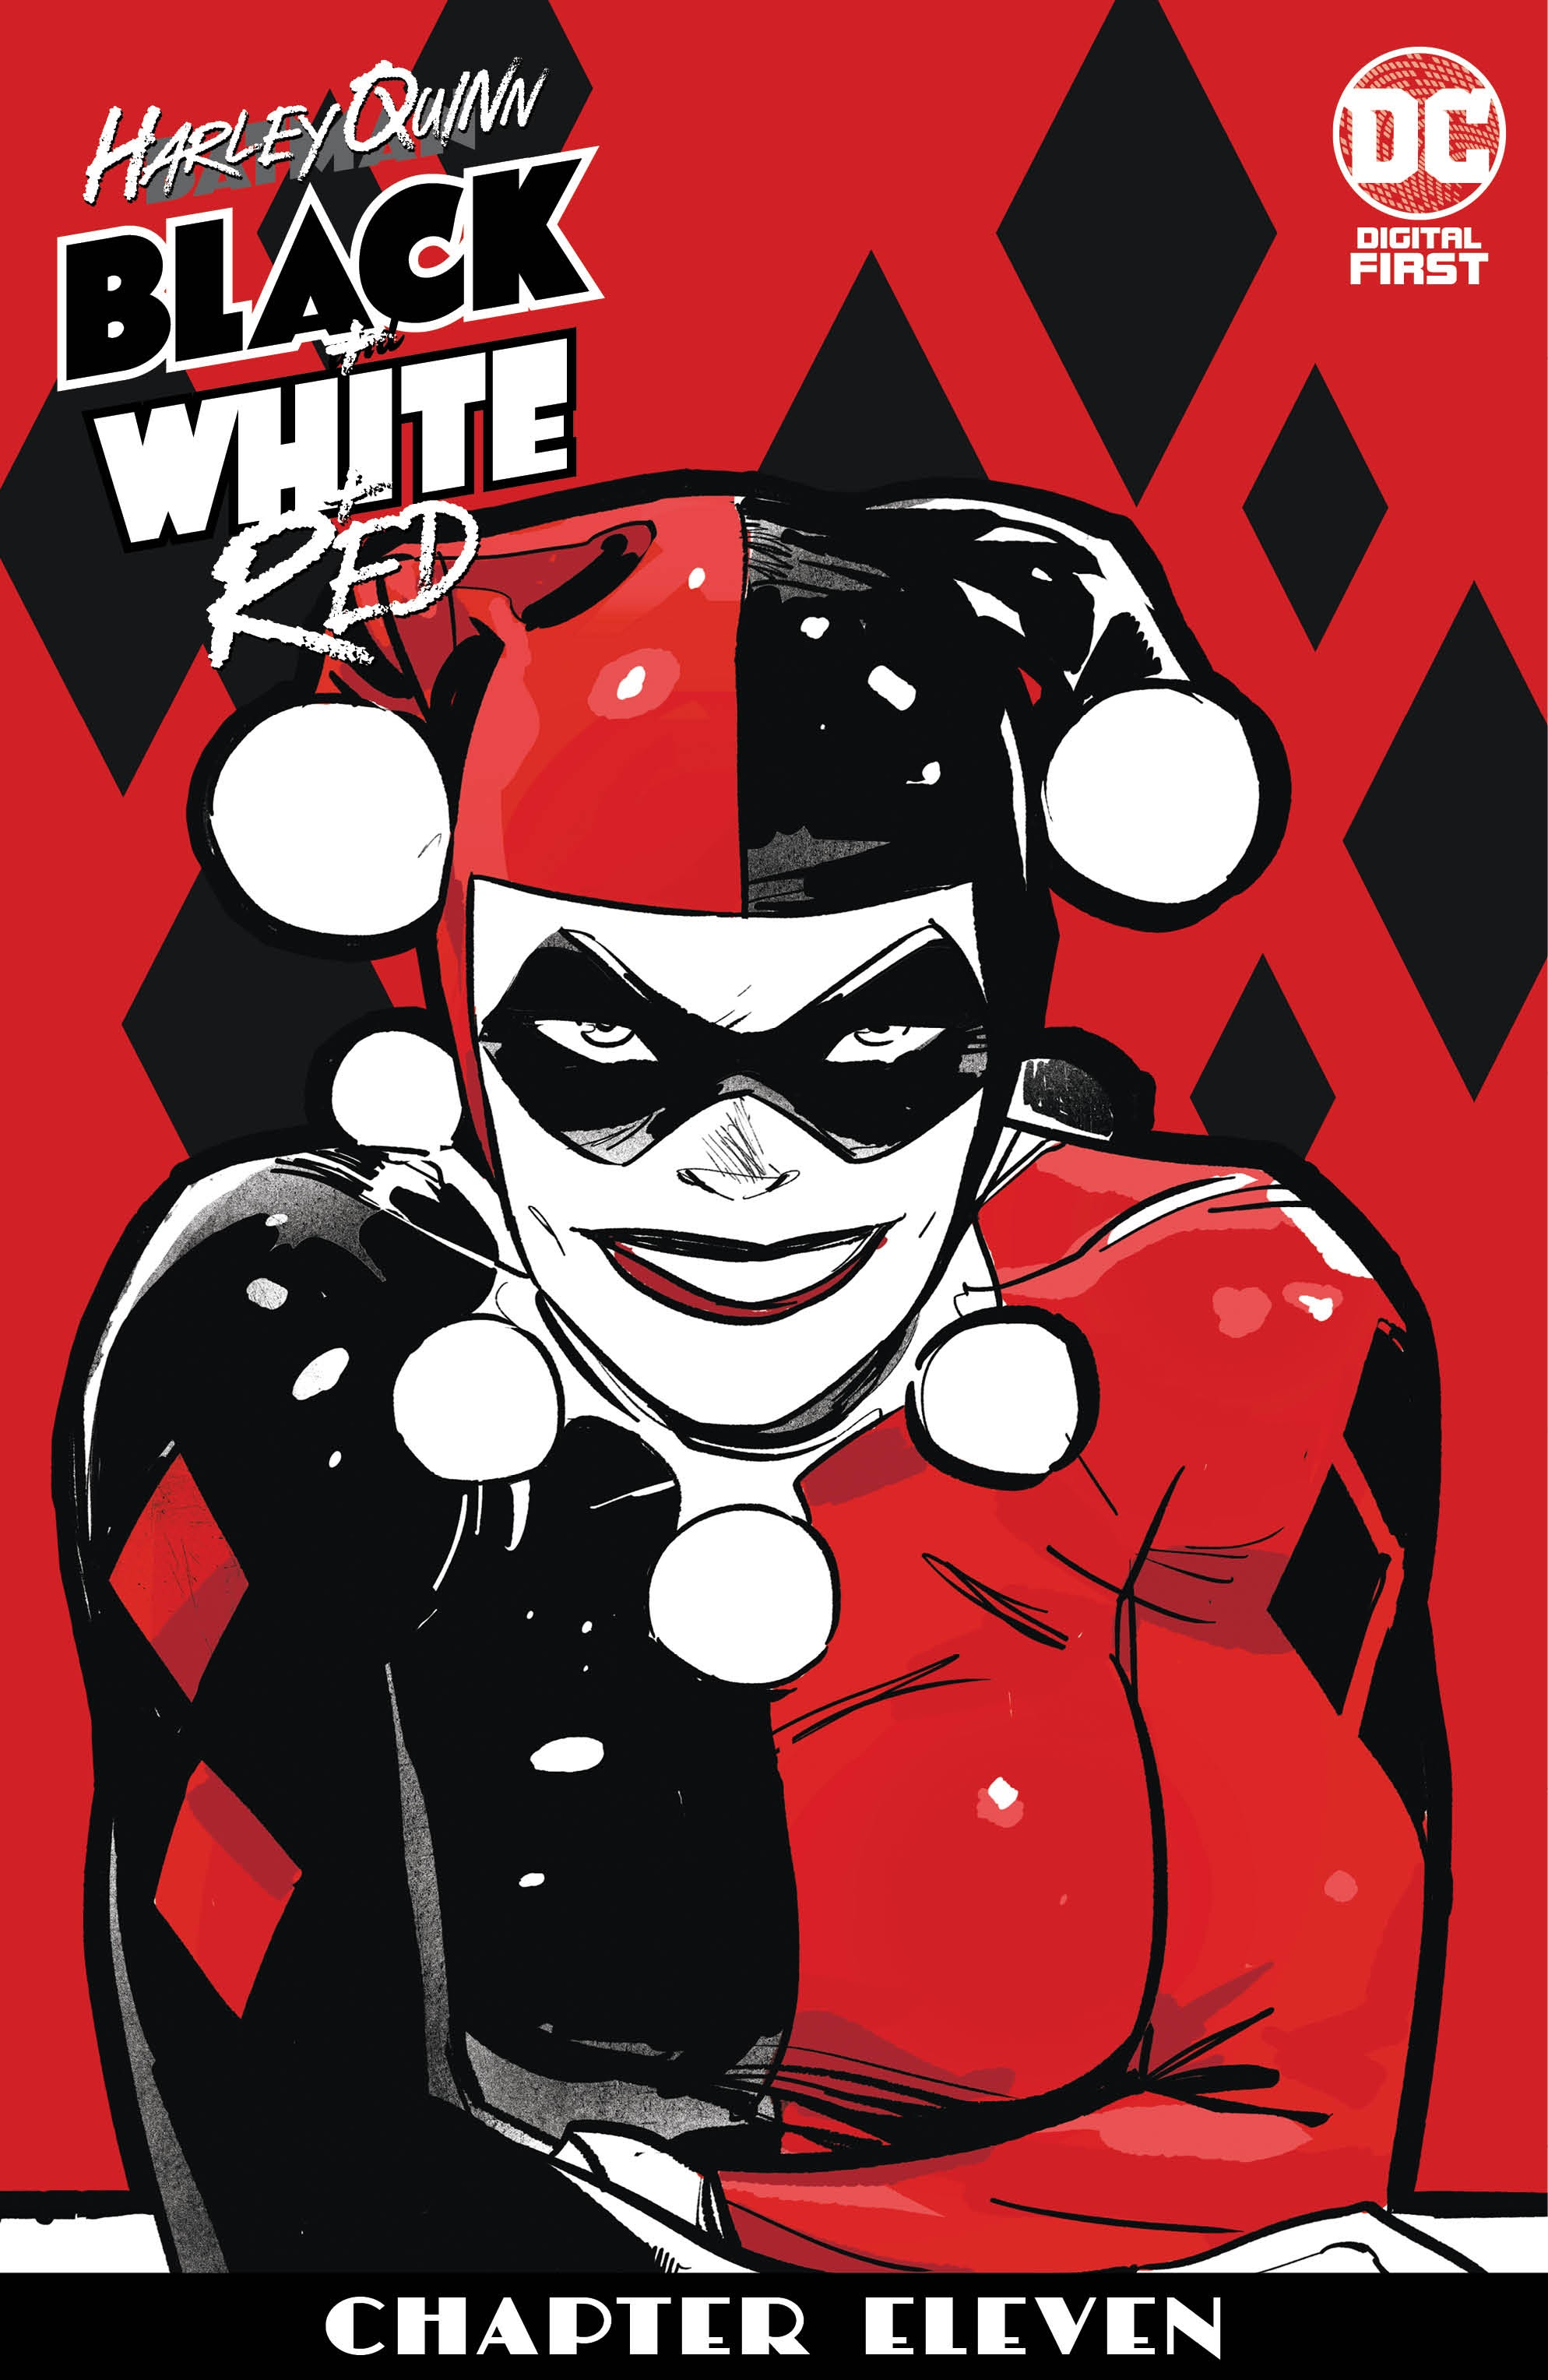 Harley Quinn: Black + White + Red Vol 1 11 (Digital)